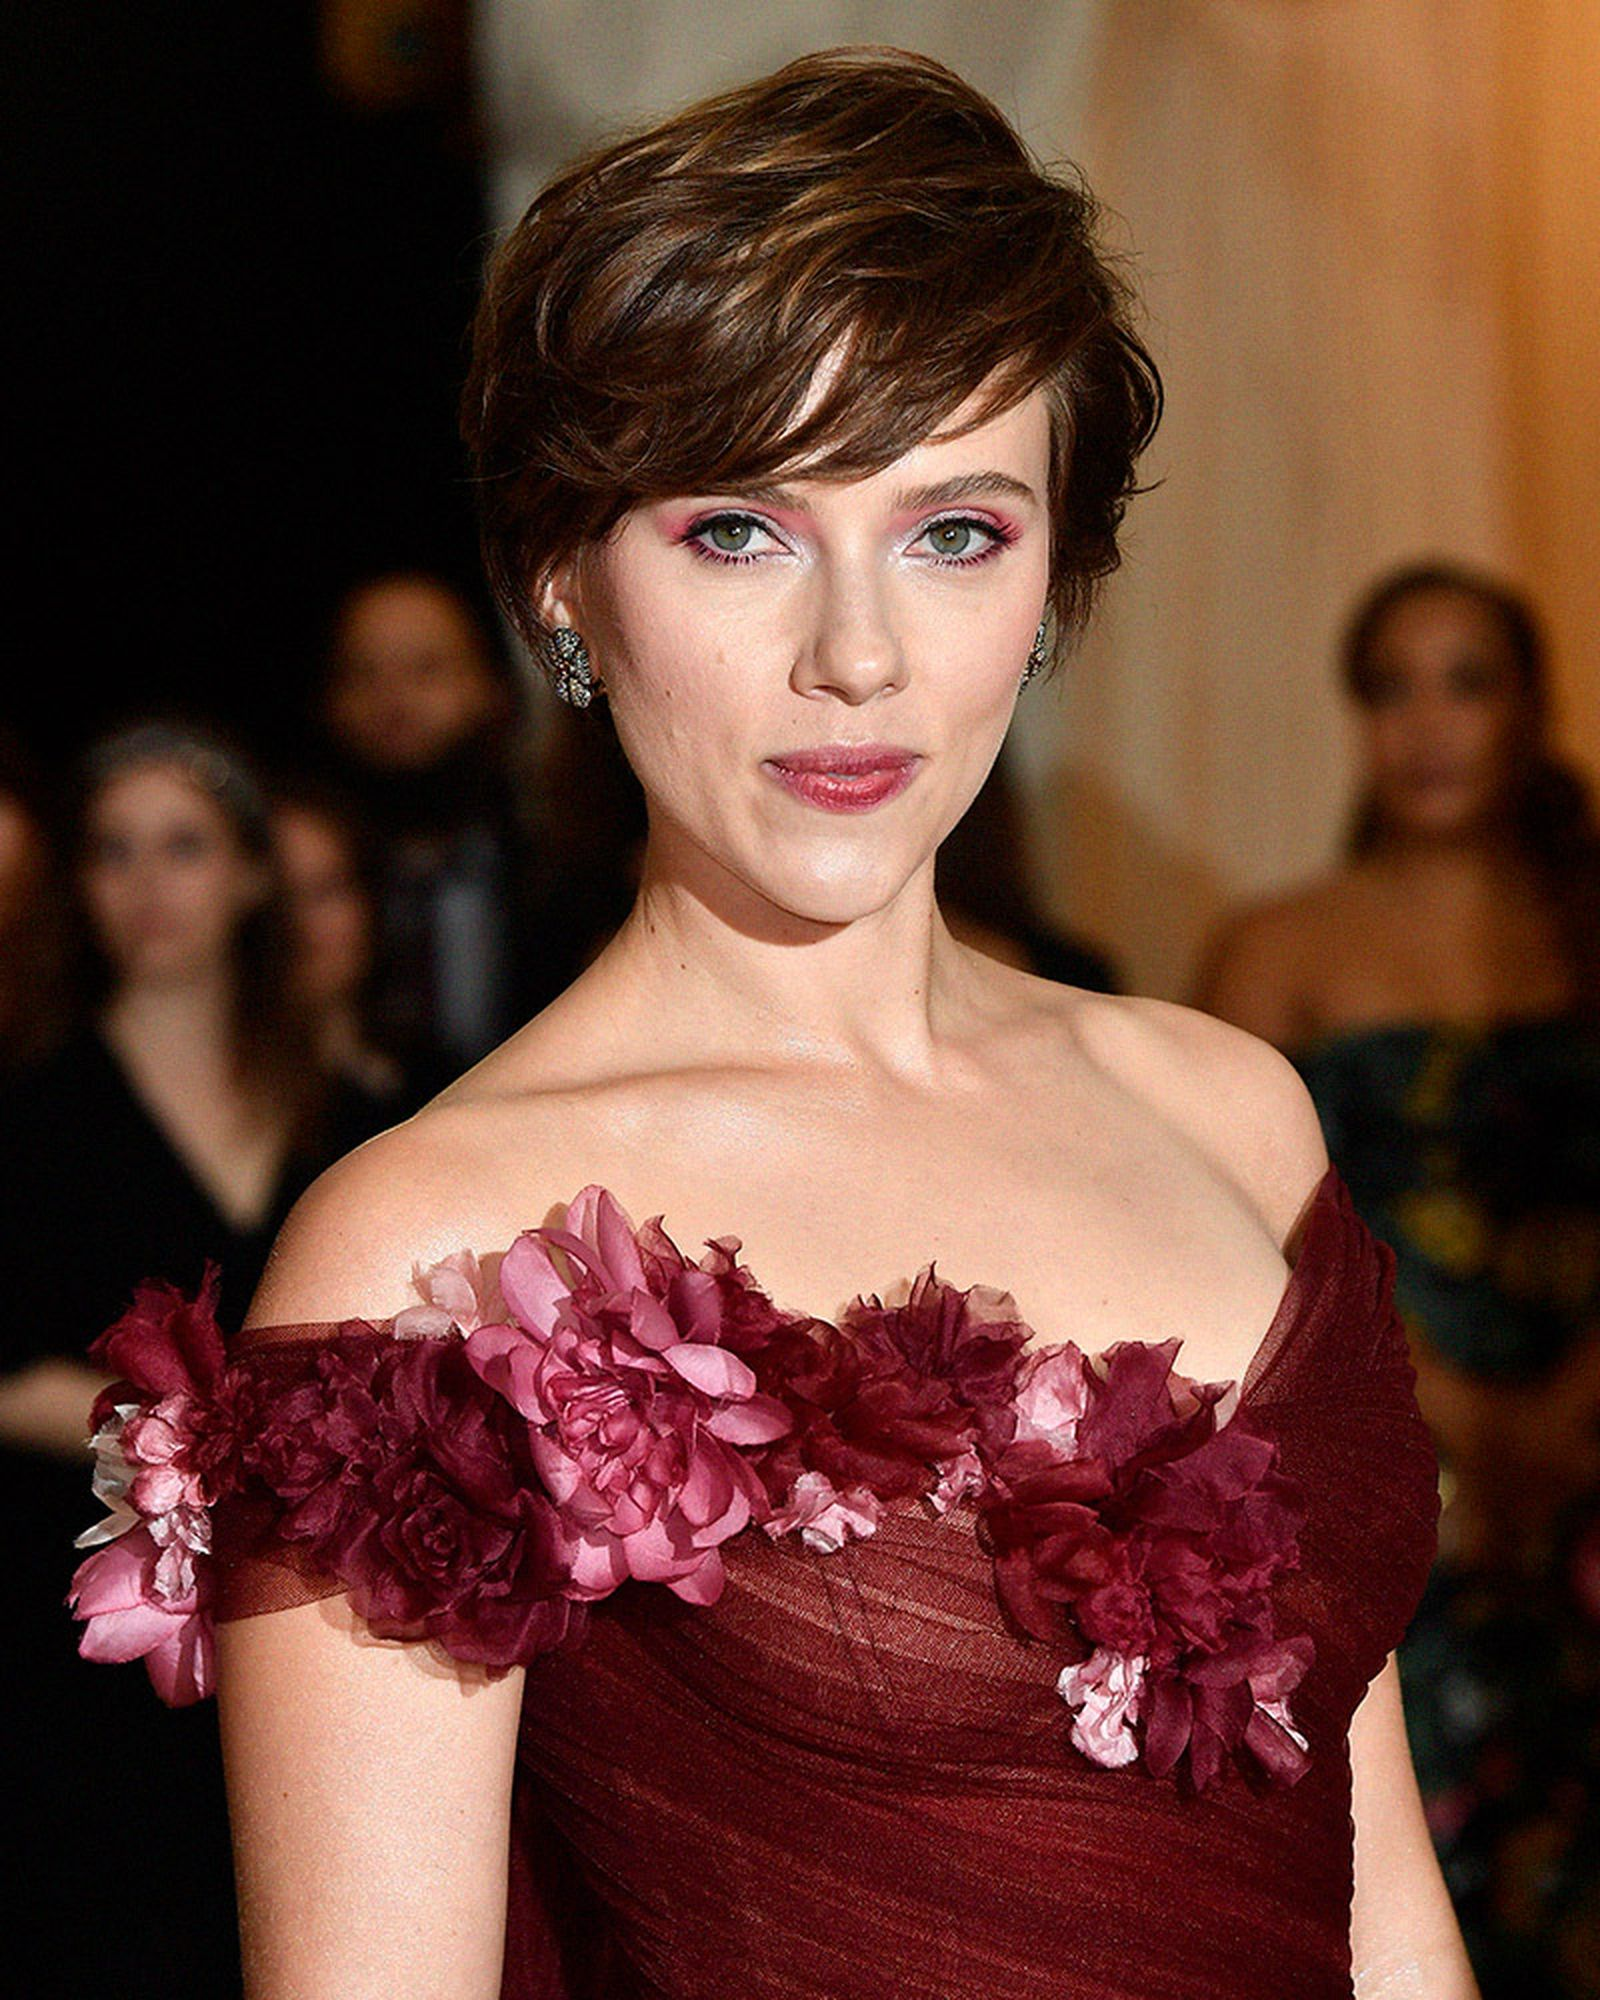 scarlett johansson controversy Ghost In The Shell